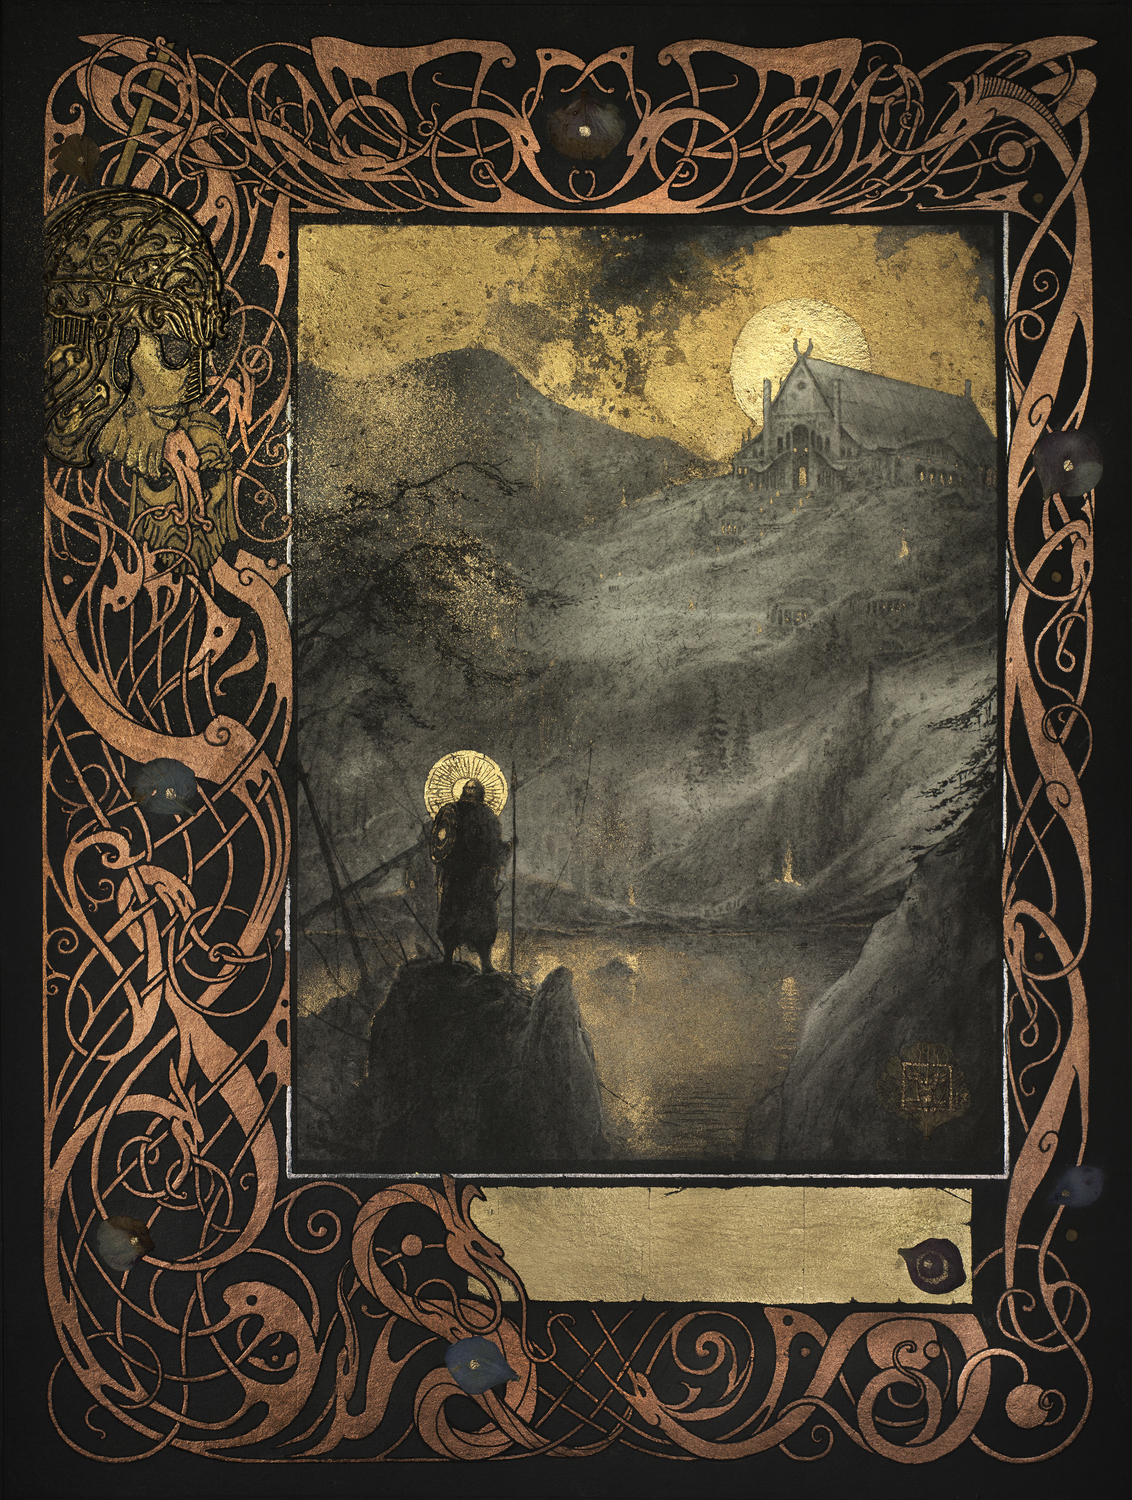 Beowulf - Heorot Artwork by Yoann Lossel